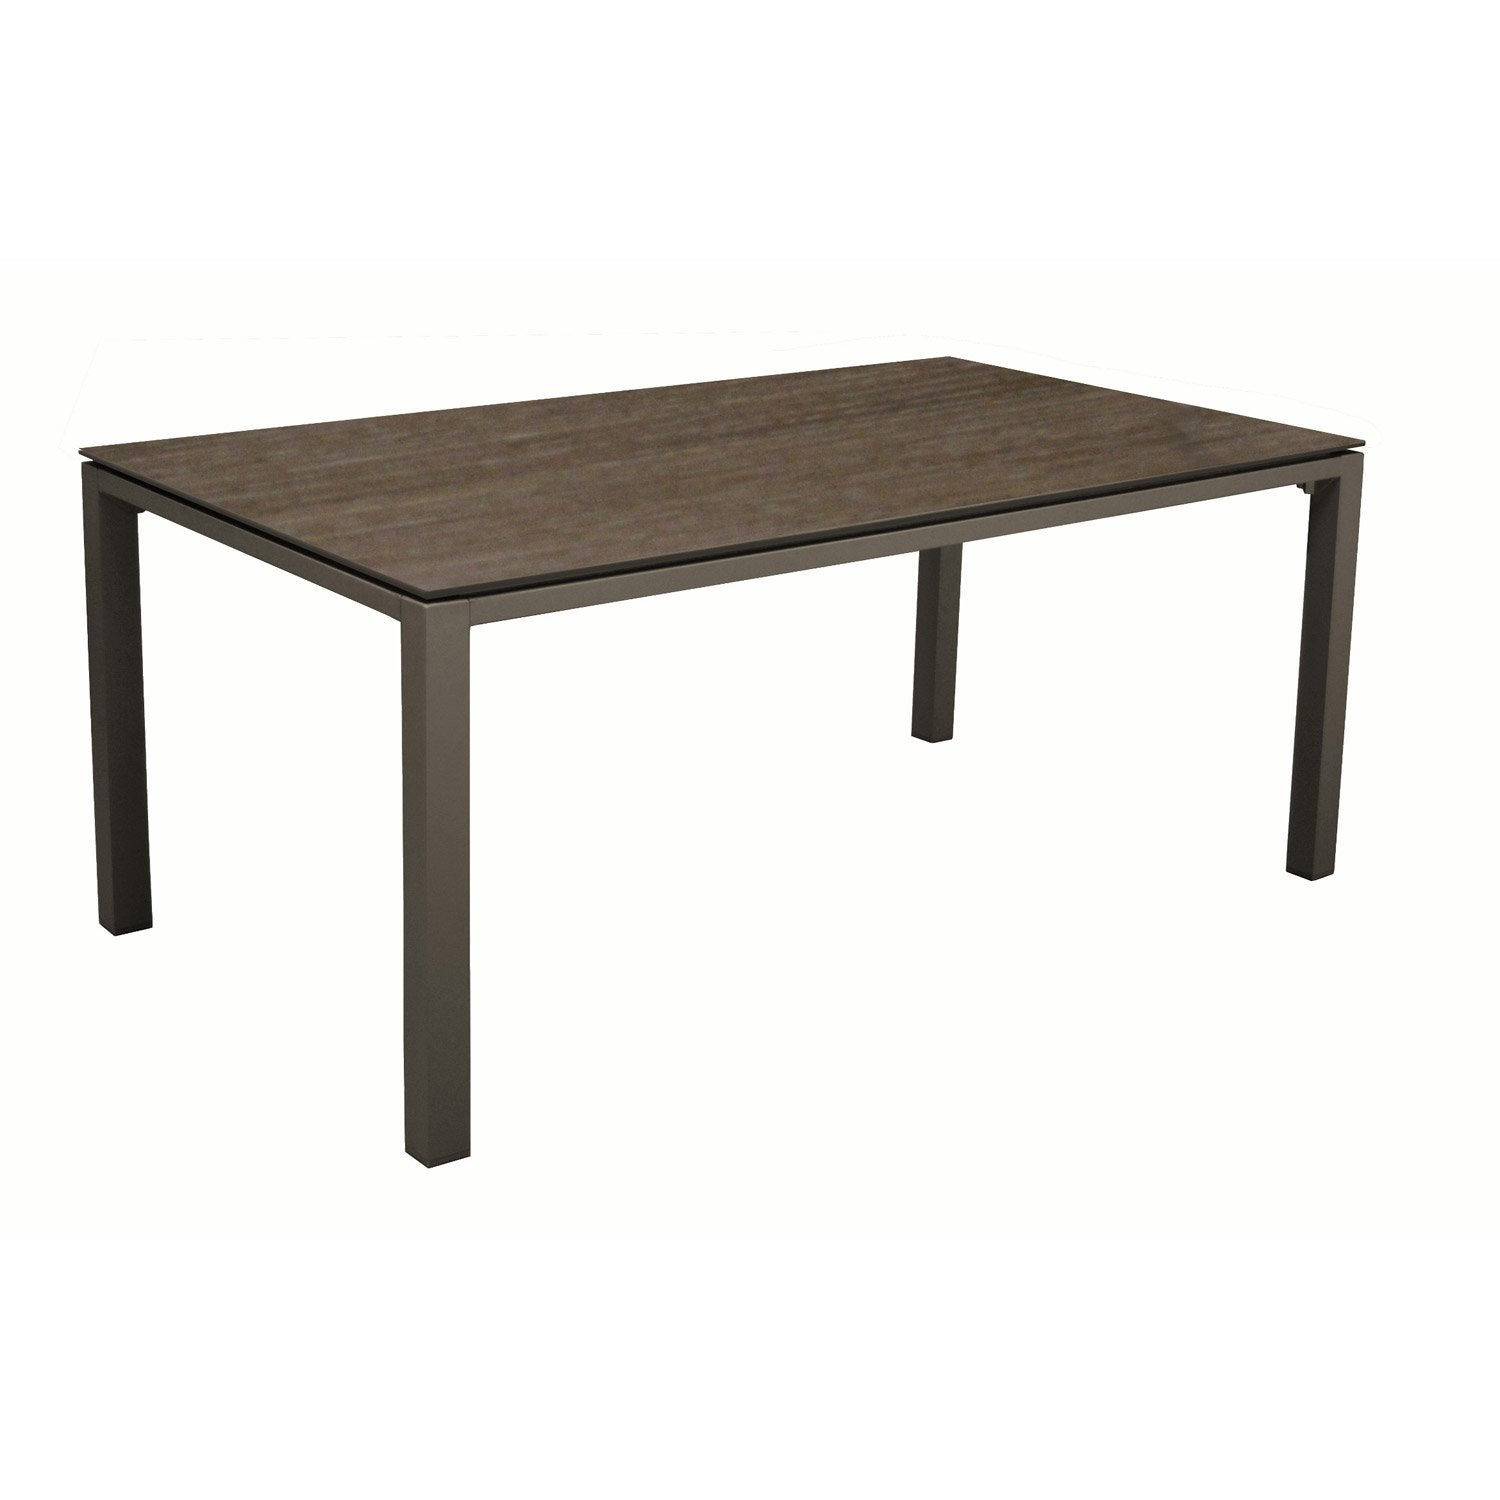 Table de jardin ston o rectangulaire caf cedar 8 for Table pliante murale 4 personnes